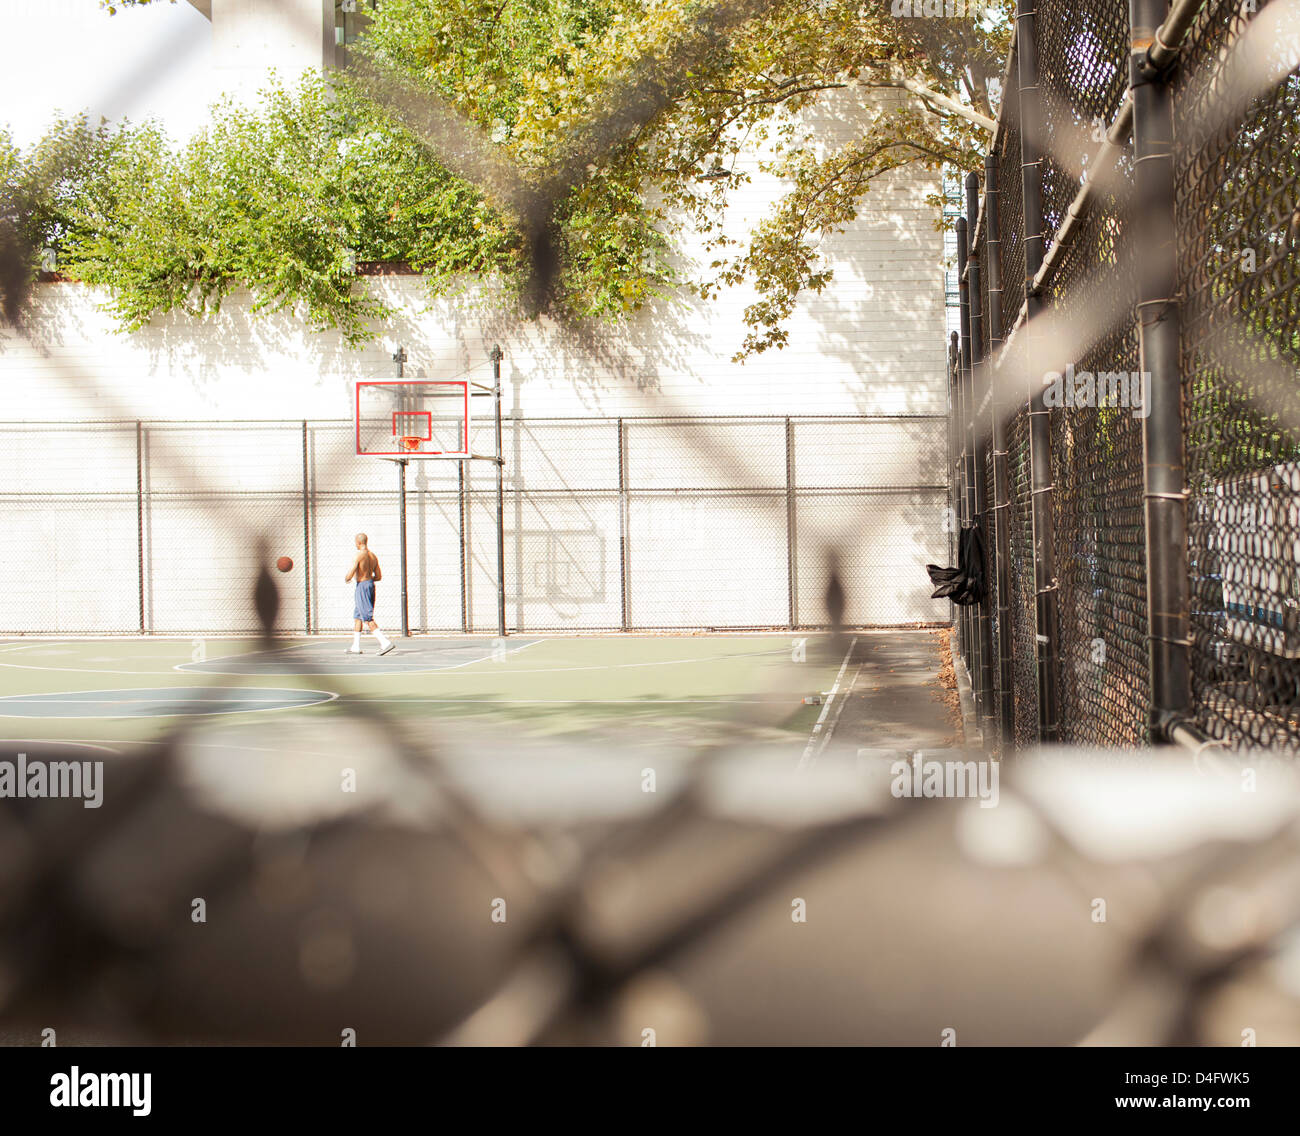 Man playing basketball on urban court - Stock Image